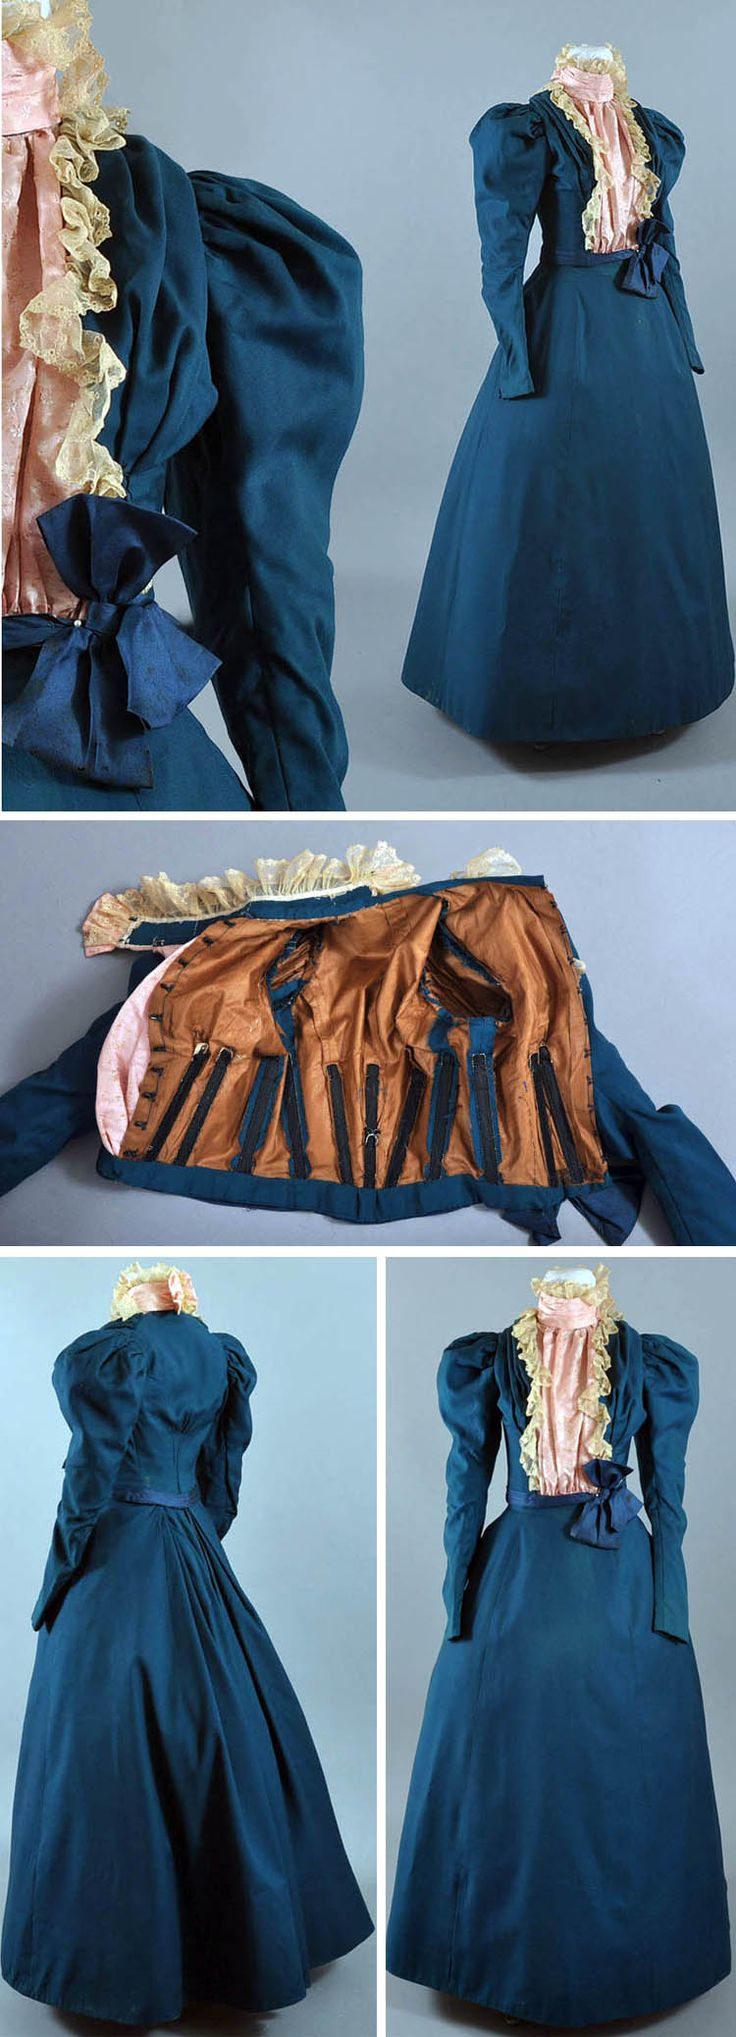 Visiting or promenade dress, circa 1895. Peacock blue wool. Skirt is Princess-style and created with gores. It has deeper gathers in back where it hooks closed. Bodice is boned and has moderate leg o' mutton sleeves. It is very fitted and ends at waist. Has silk trim, lace, and pink silk inset. High collar. Via Maire McLeod/Ruby Lane.